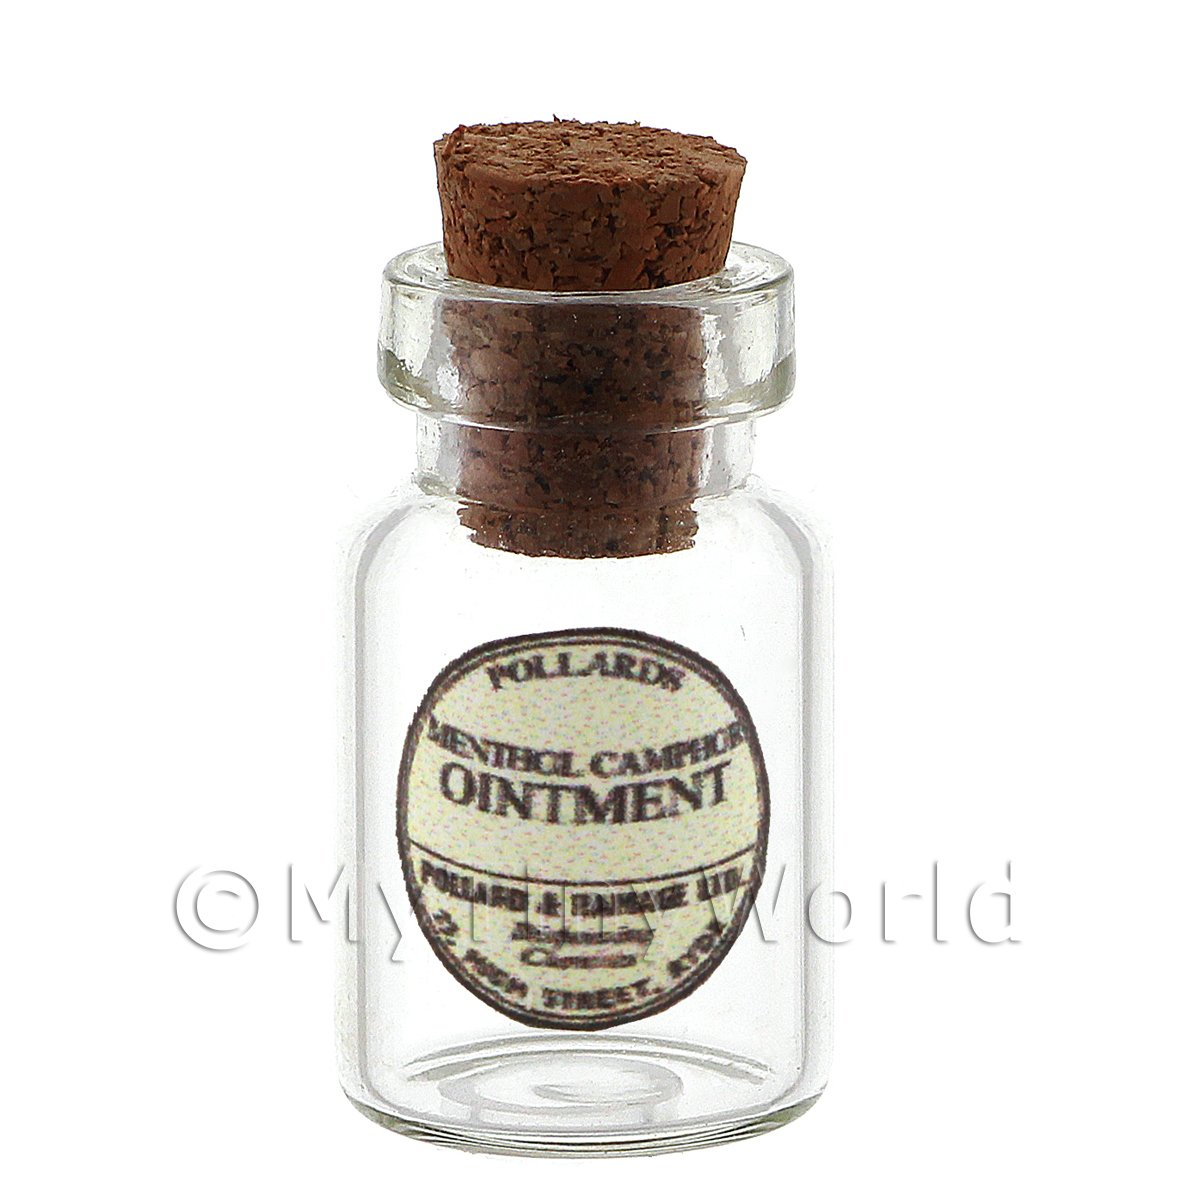 Dolls House Miniature Camphor Ointment Glass Apothecary Ointment Jar